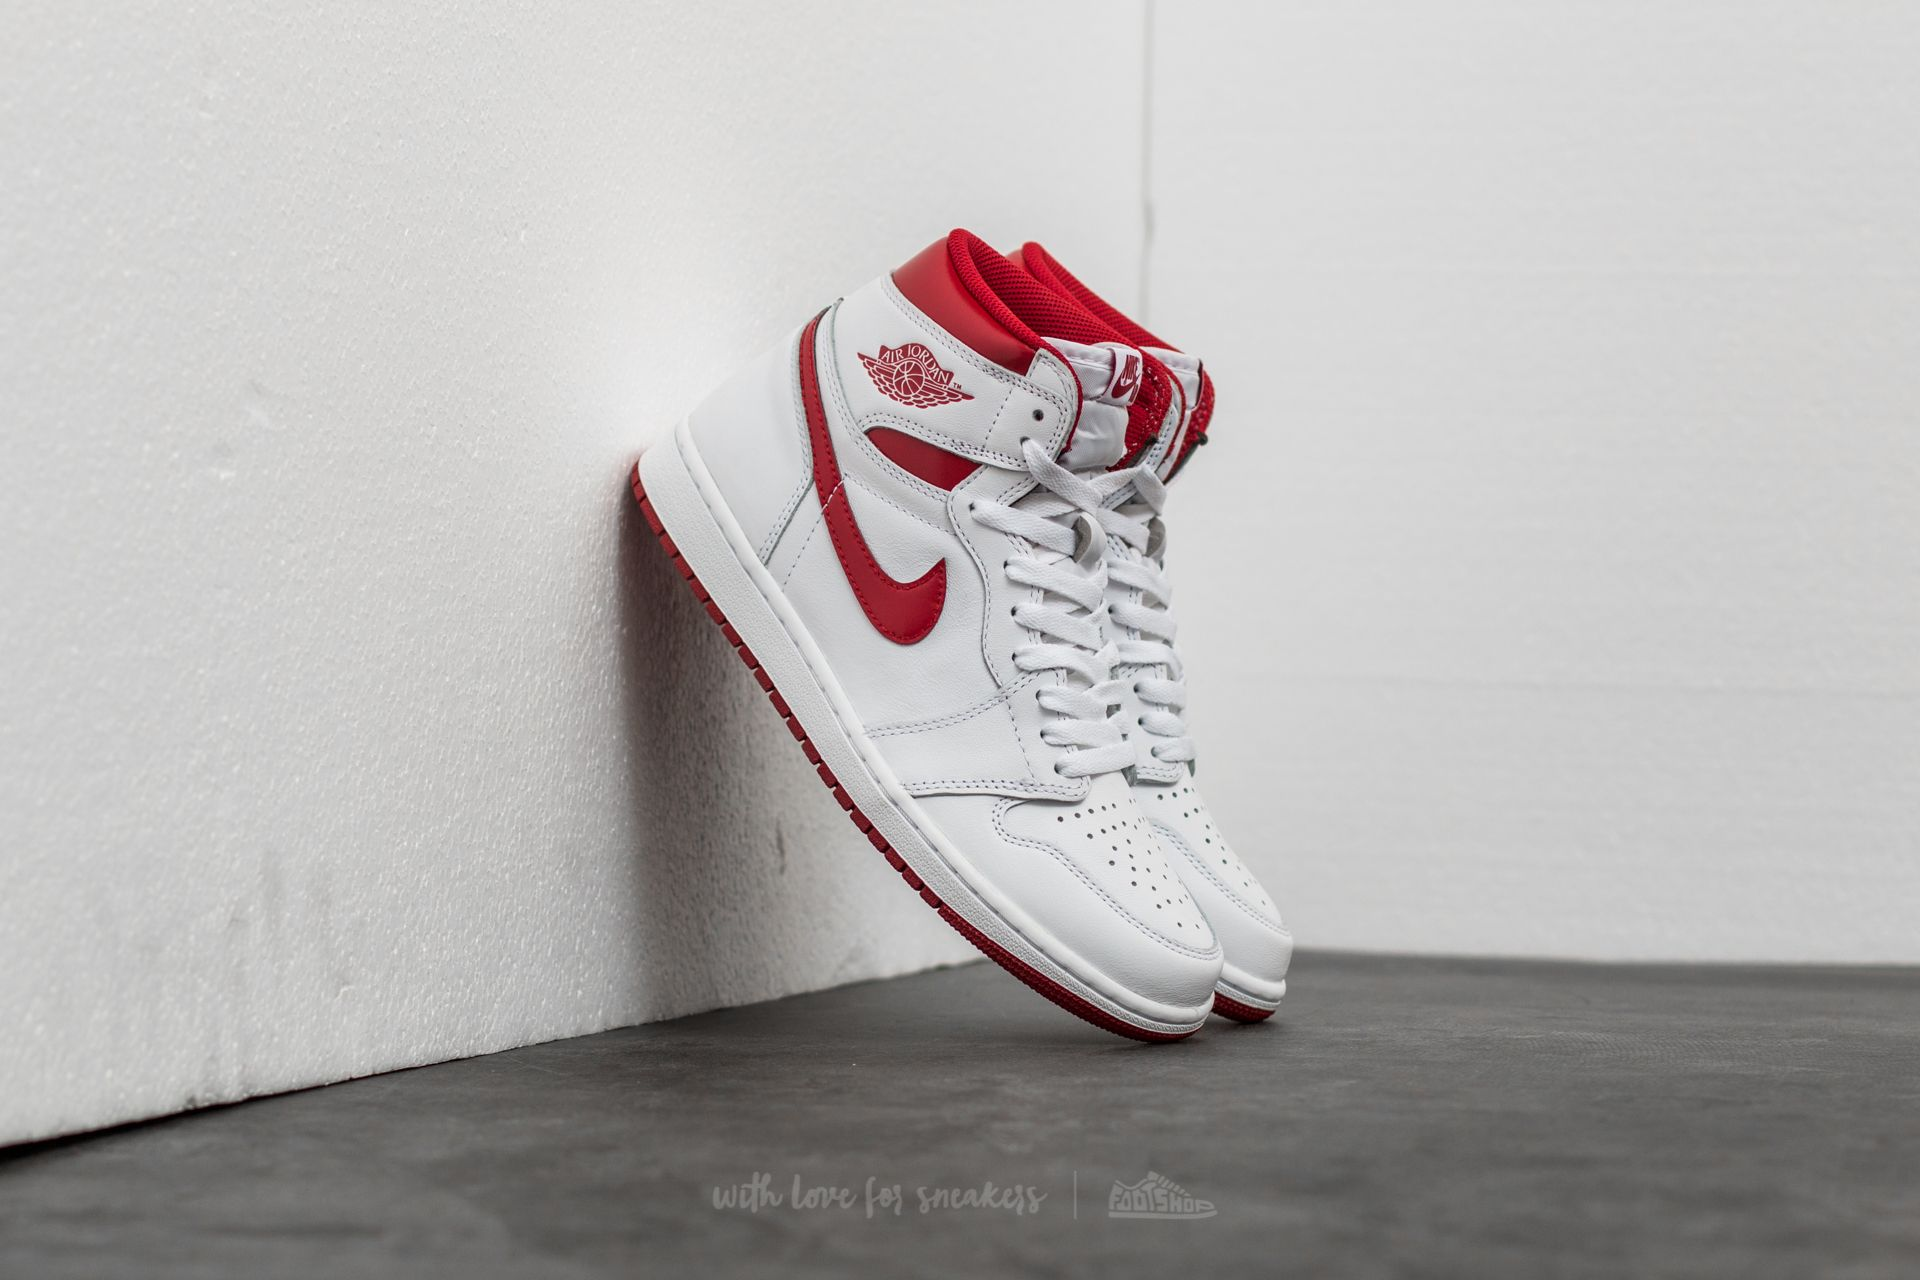 e89661e38db Air Jordan 1 Retro High OG 'Metallic Red' White/ Varsity Red | Footshop